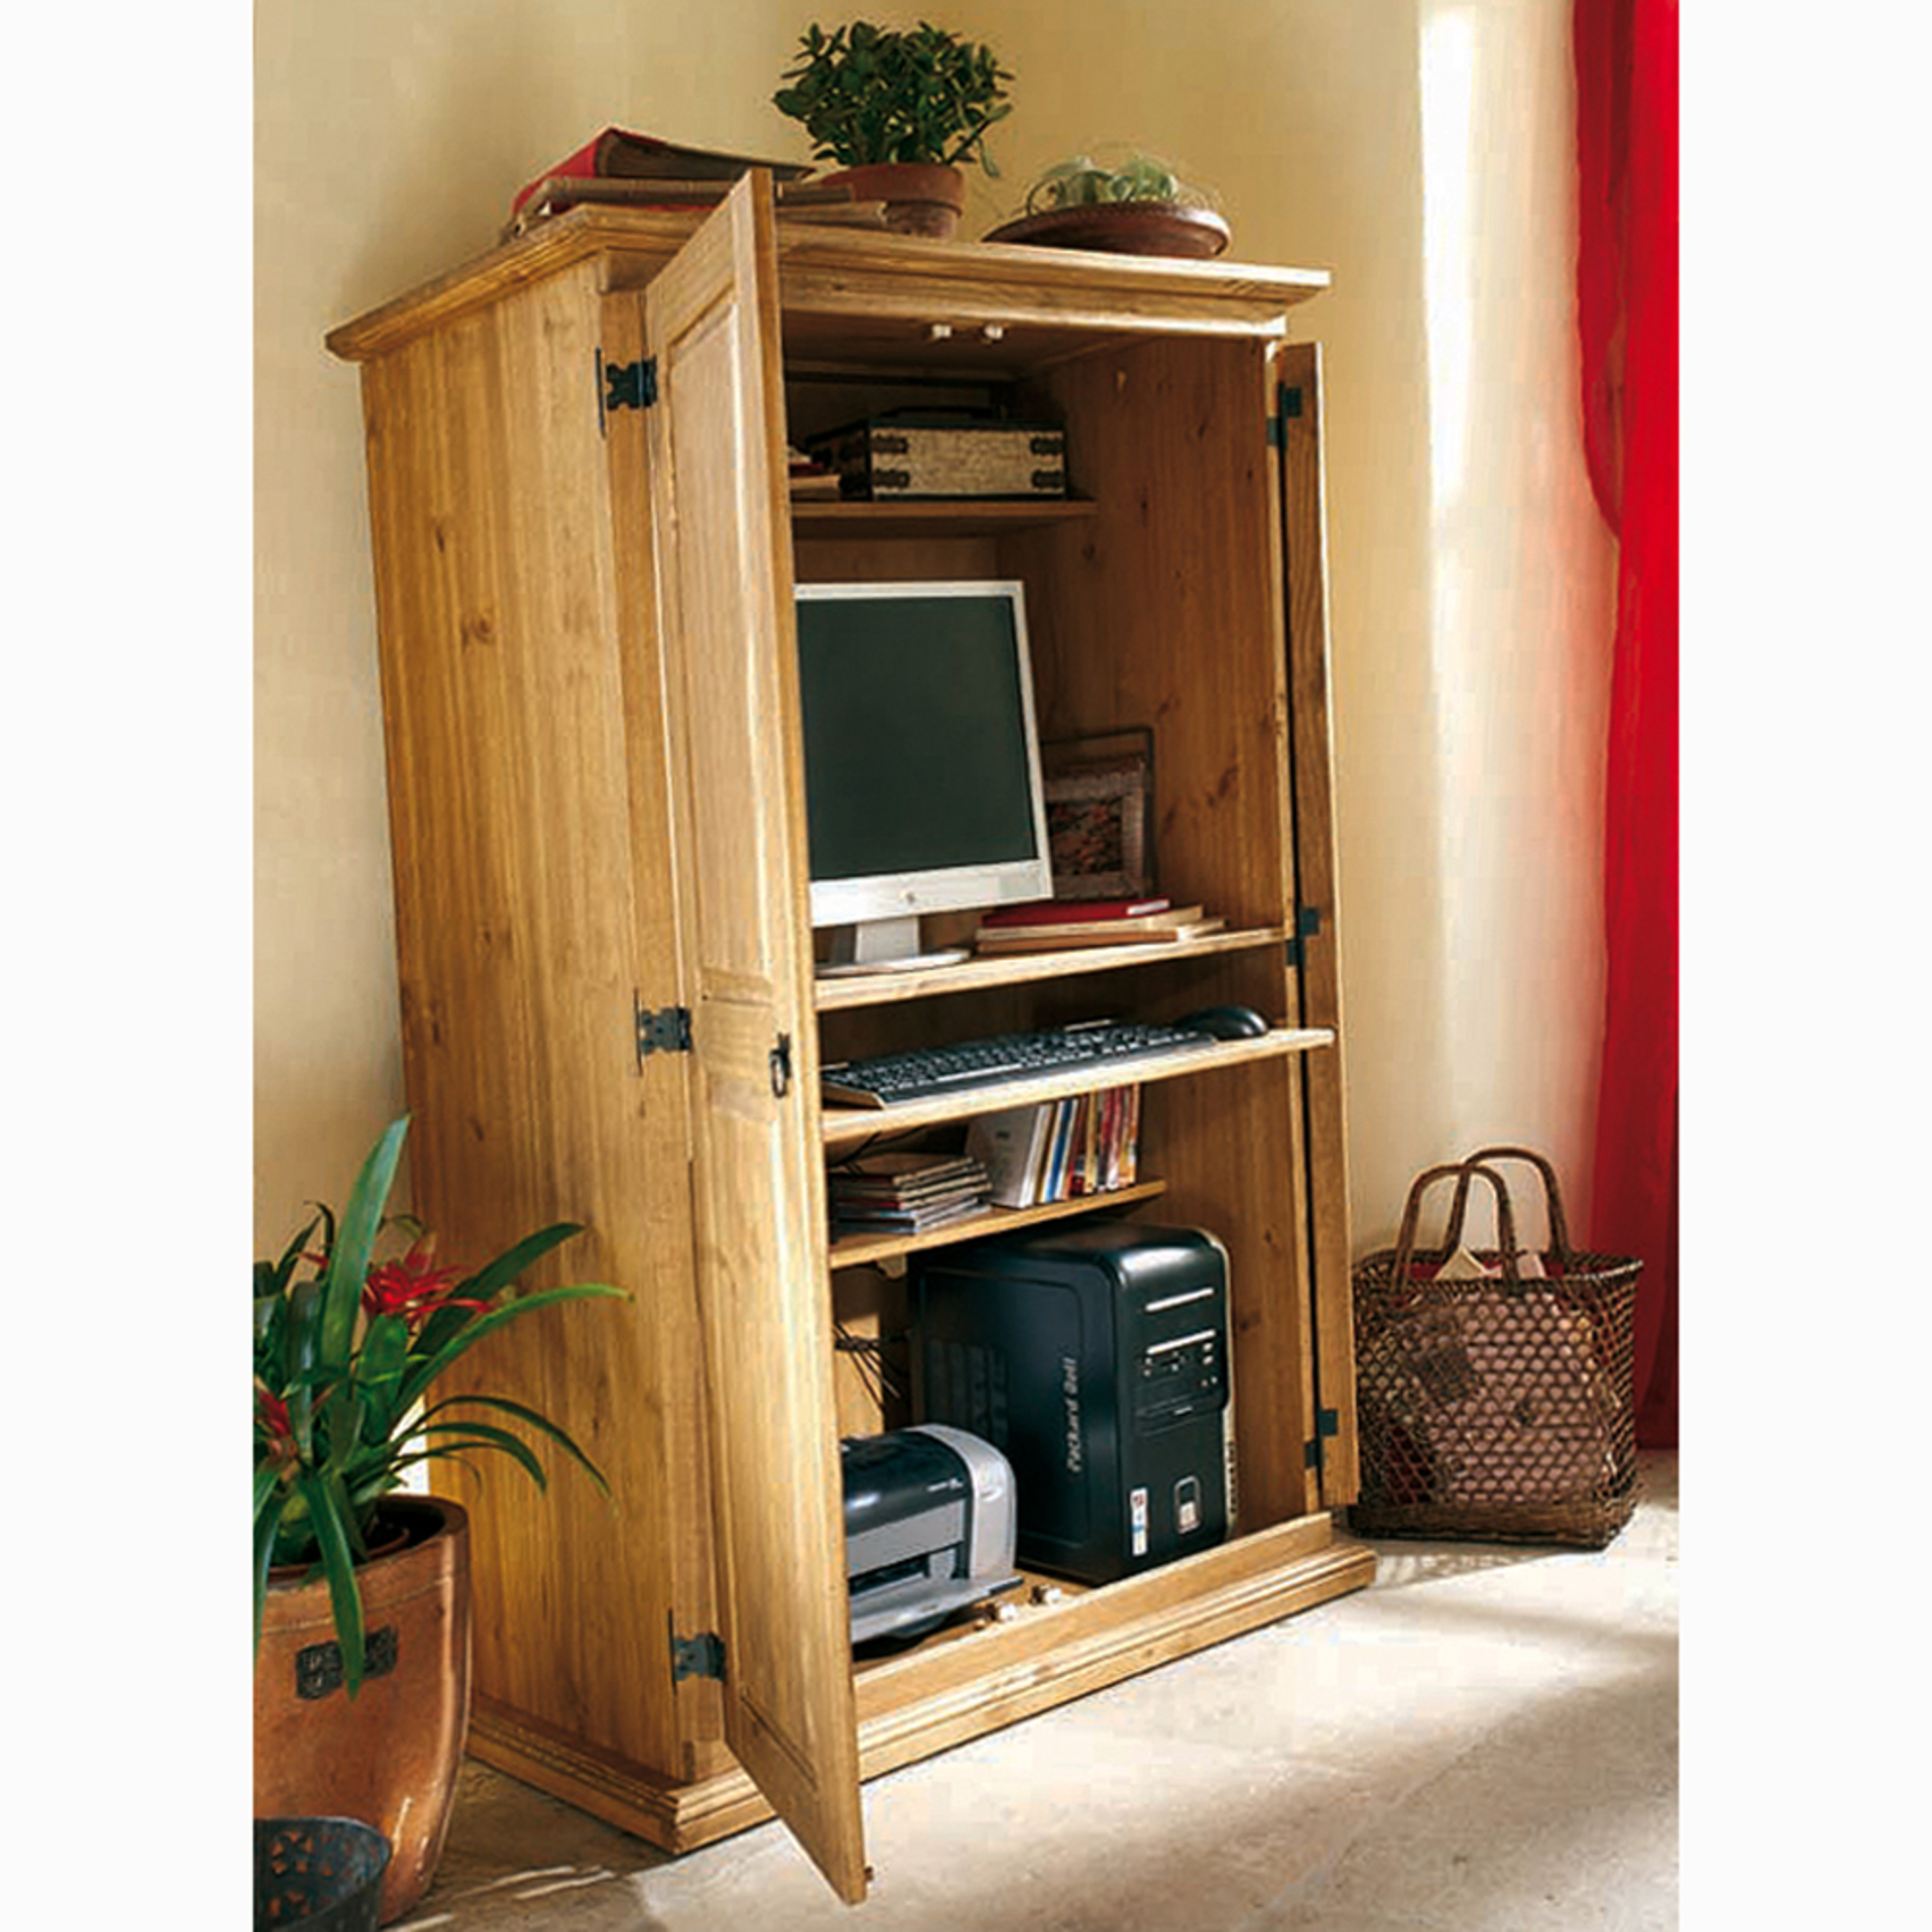 Meuble tv ou armoire micro informatique el patio for Armoire informatique